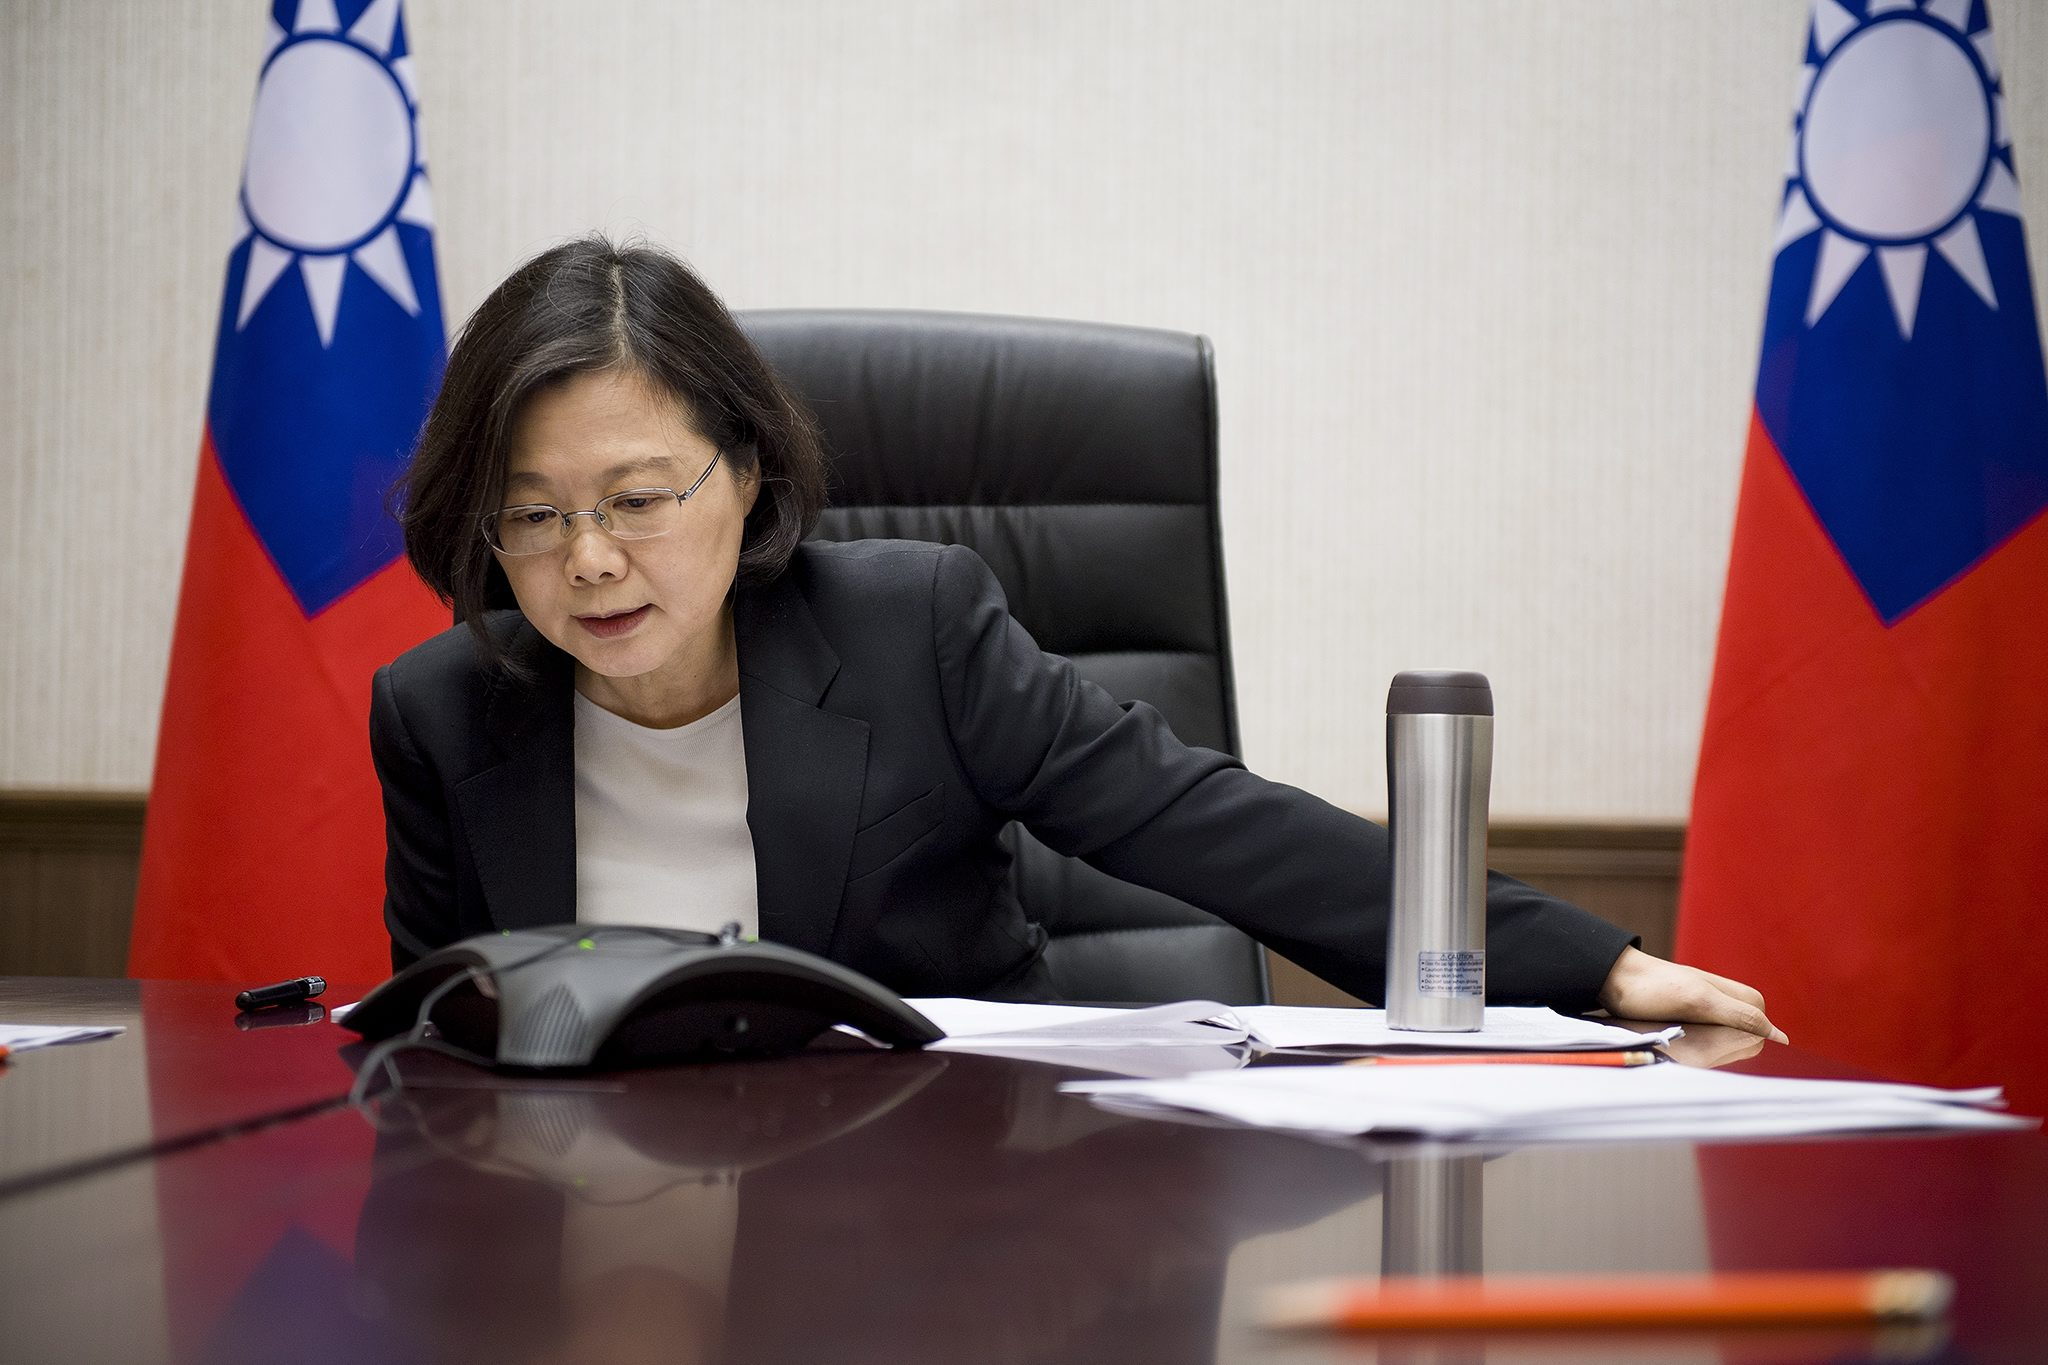 epa05657462 A handout picture released by the Office of the President Taiwan on 03 December 2016 shows Taiwanese President Tsai Ing-wen having a phone conversation with US President-elect Donald Trump late evening in Ta